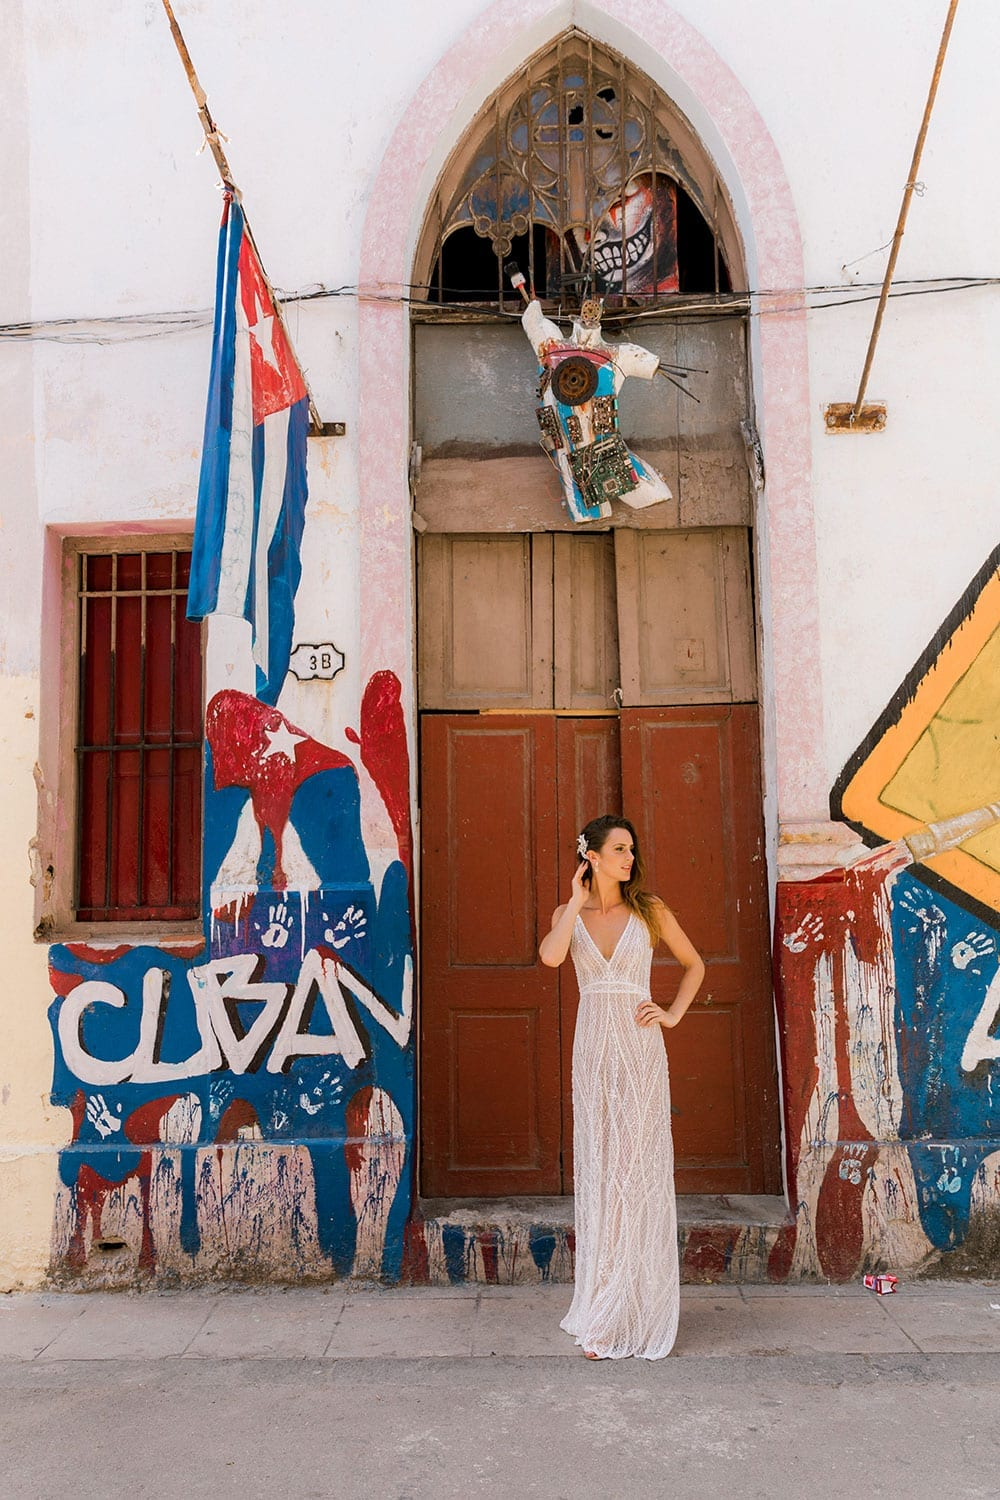 Model wearing Vinka Design Alexia Wedding Dress, a Semi Sheer Beaded Lace Wedding Gown hand raised to head in front of arch on Street in Havana with Cuba flag